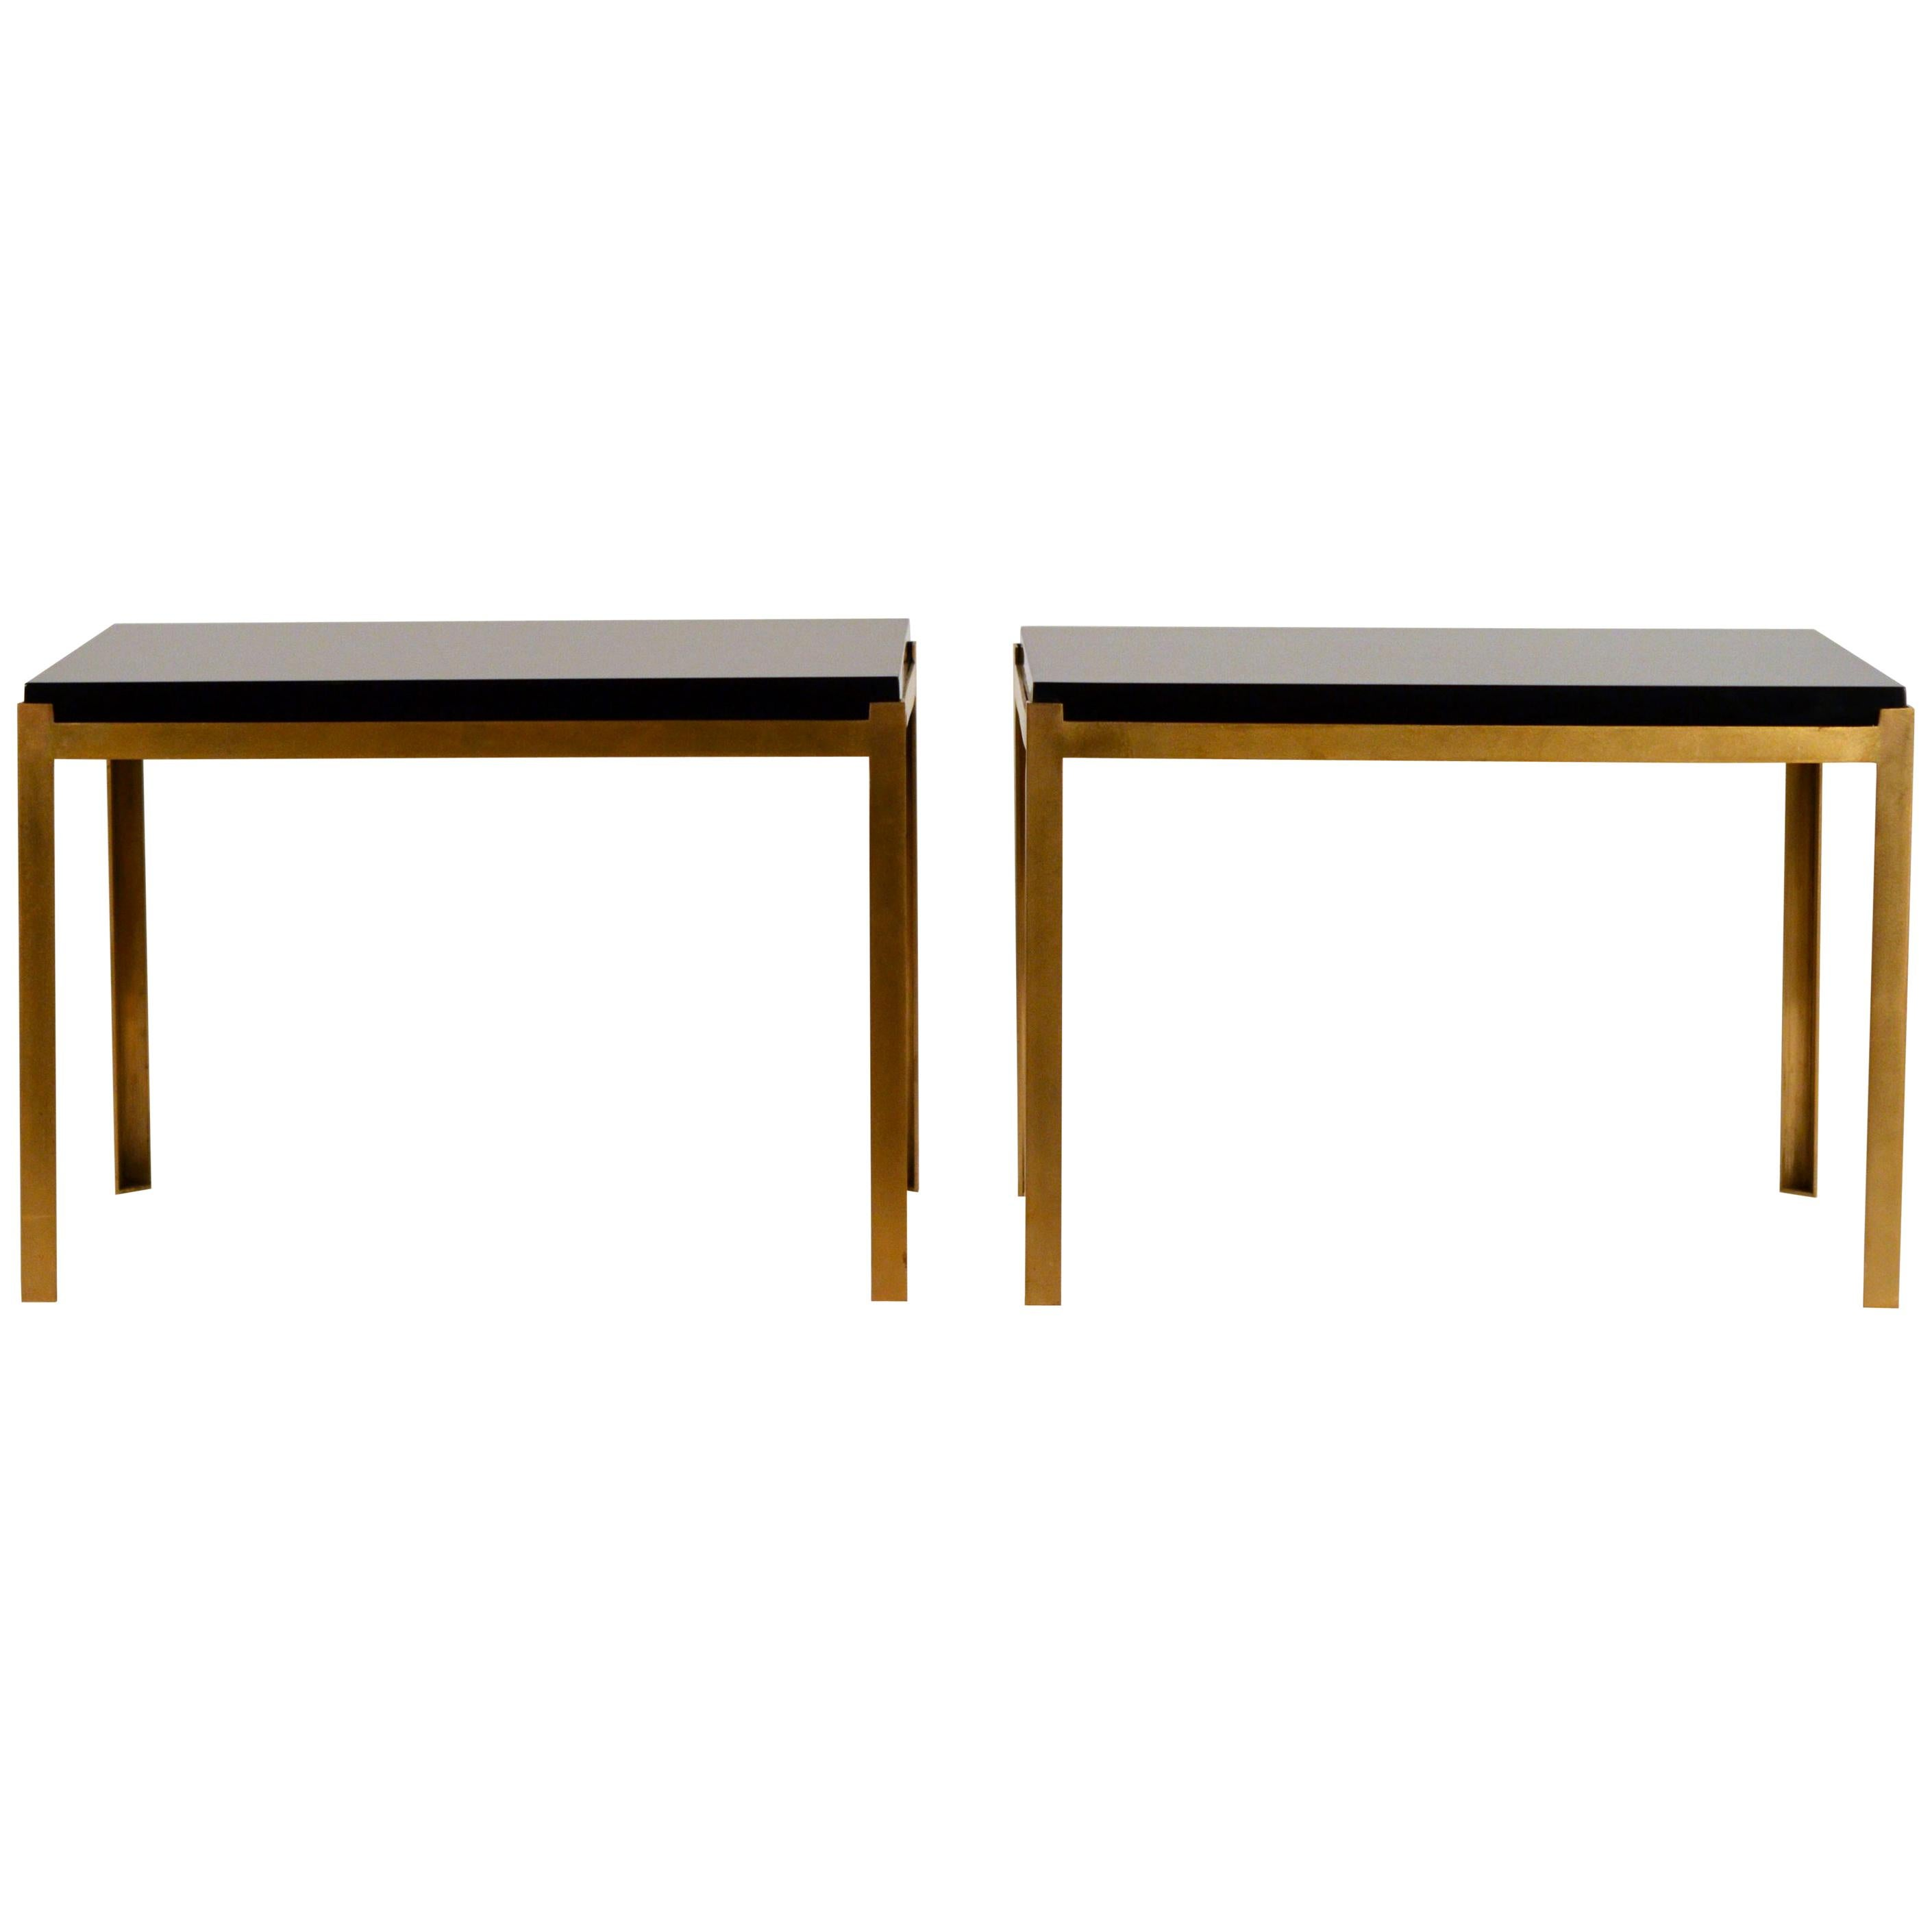 Pair of Chic 'Caisson' Solid Brass and Black Lacquer End Tables by Design Frères